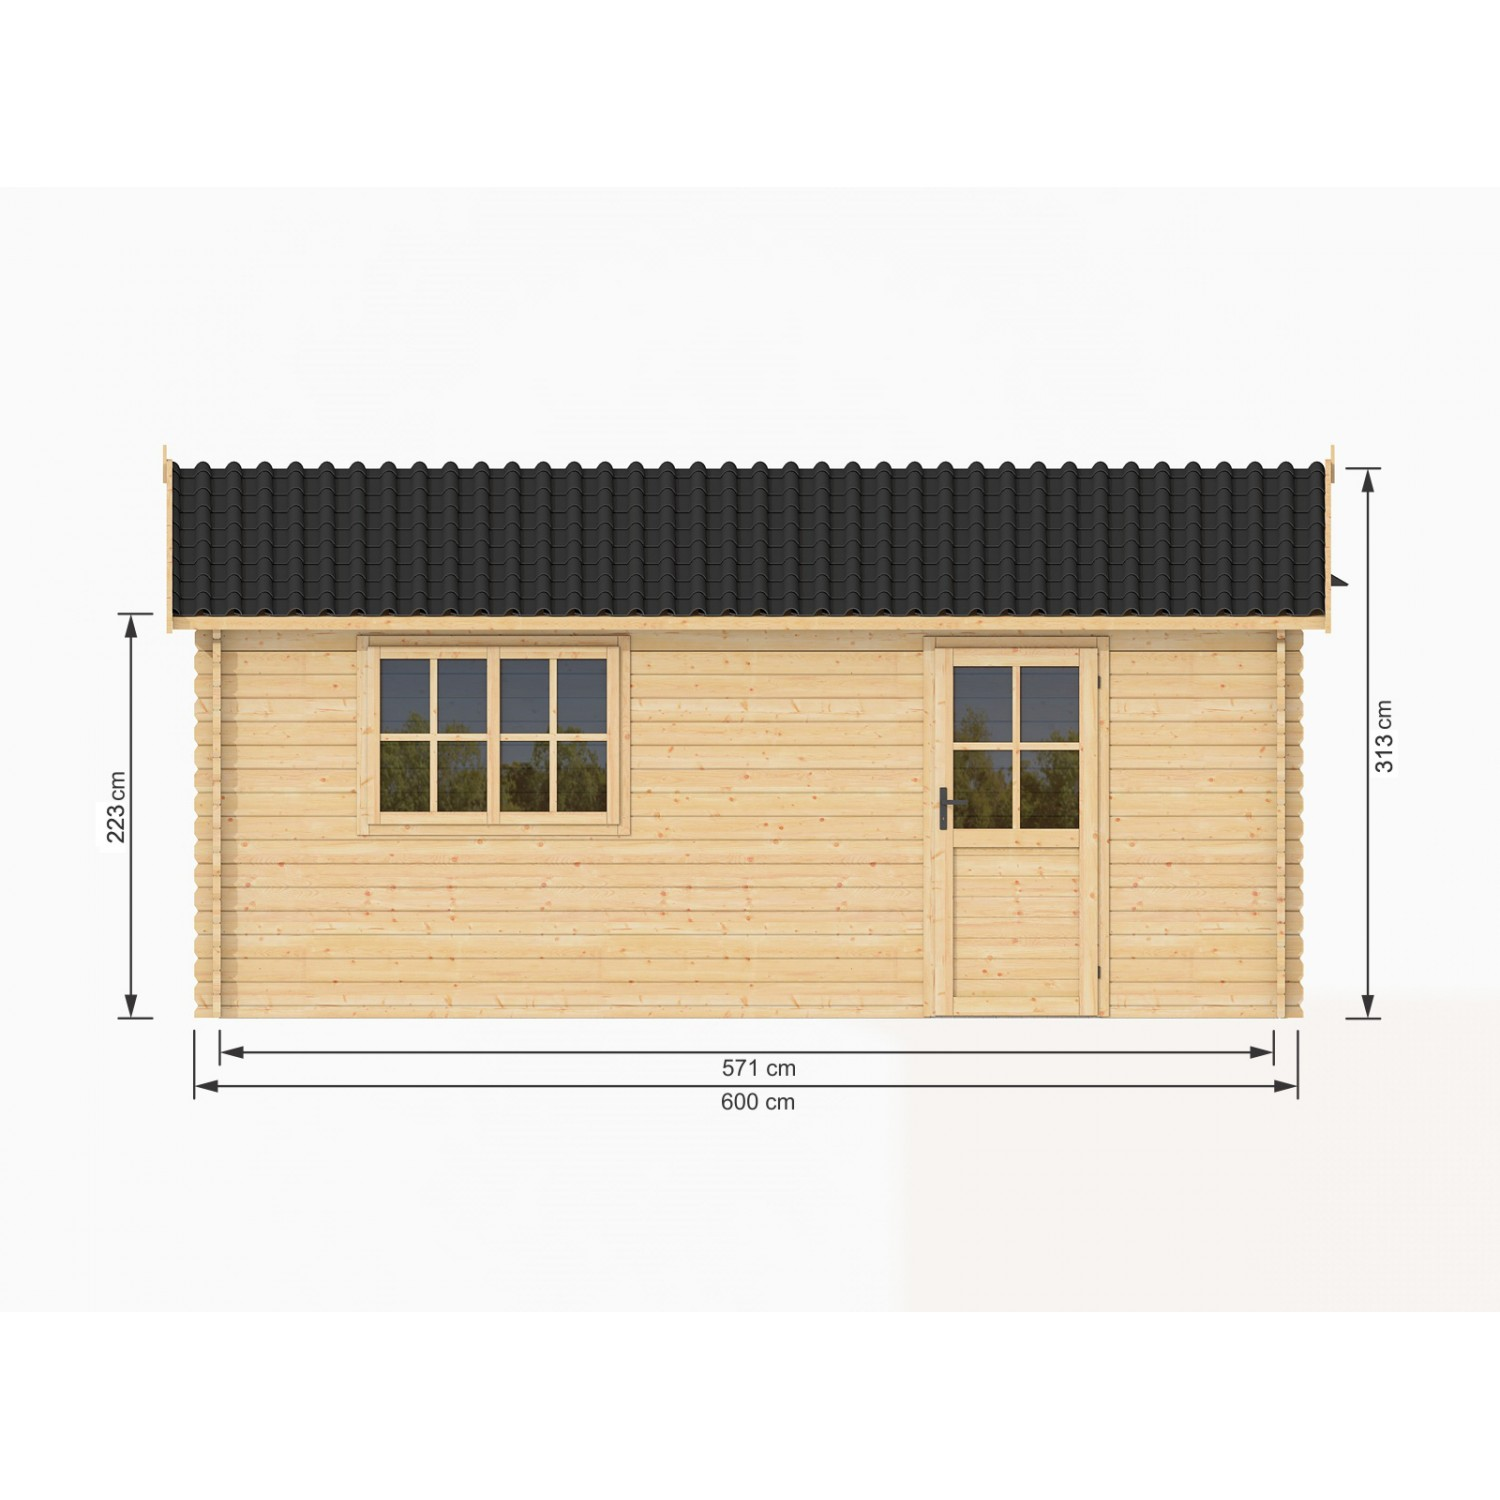 garage en bois massif 36m2 600x600 44mm. Black Bedroom Furniture Sets. Home Design Ideas